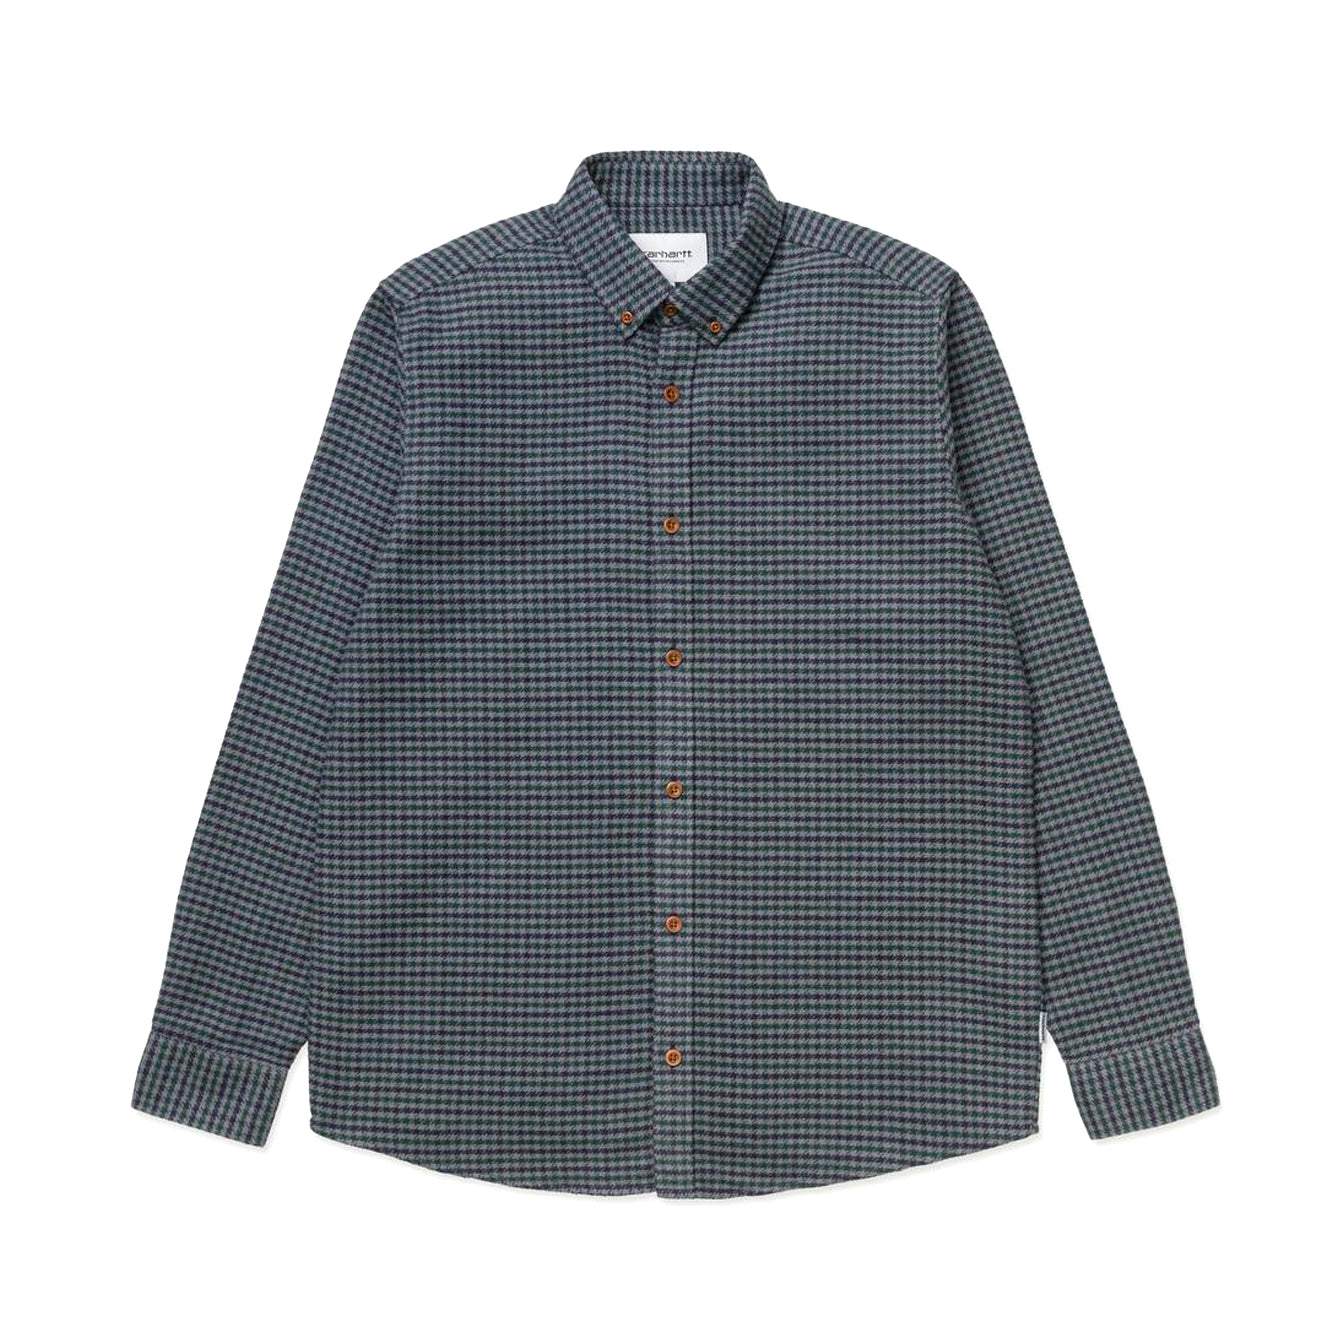 Thorne Shirt (Dark Navy / Husky)